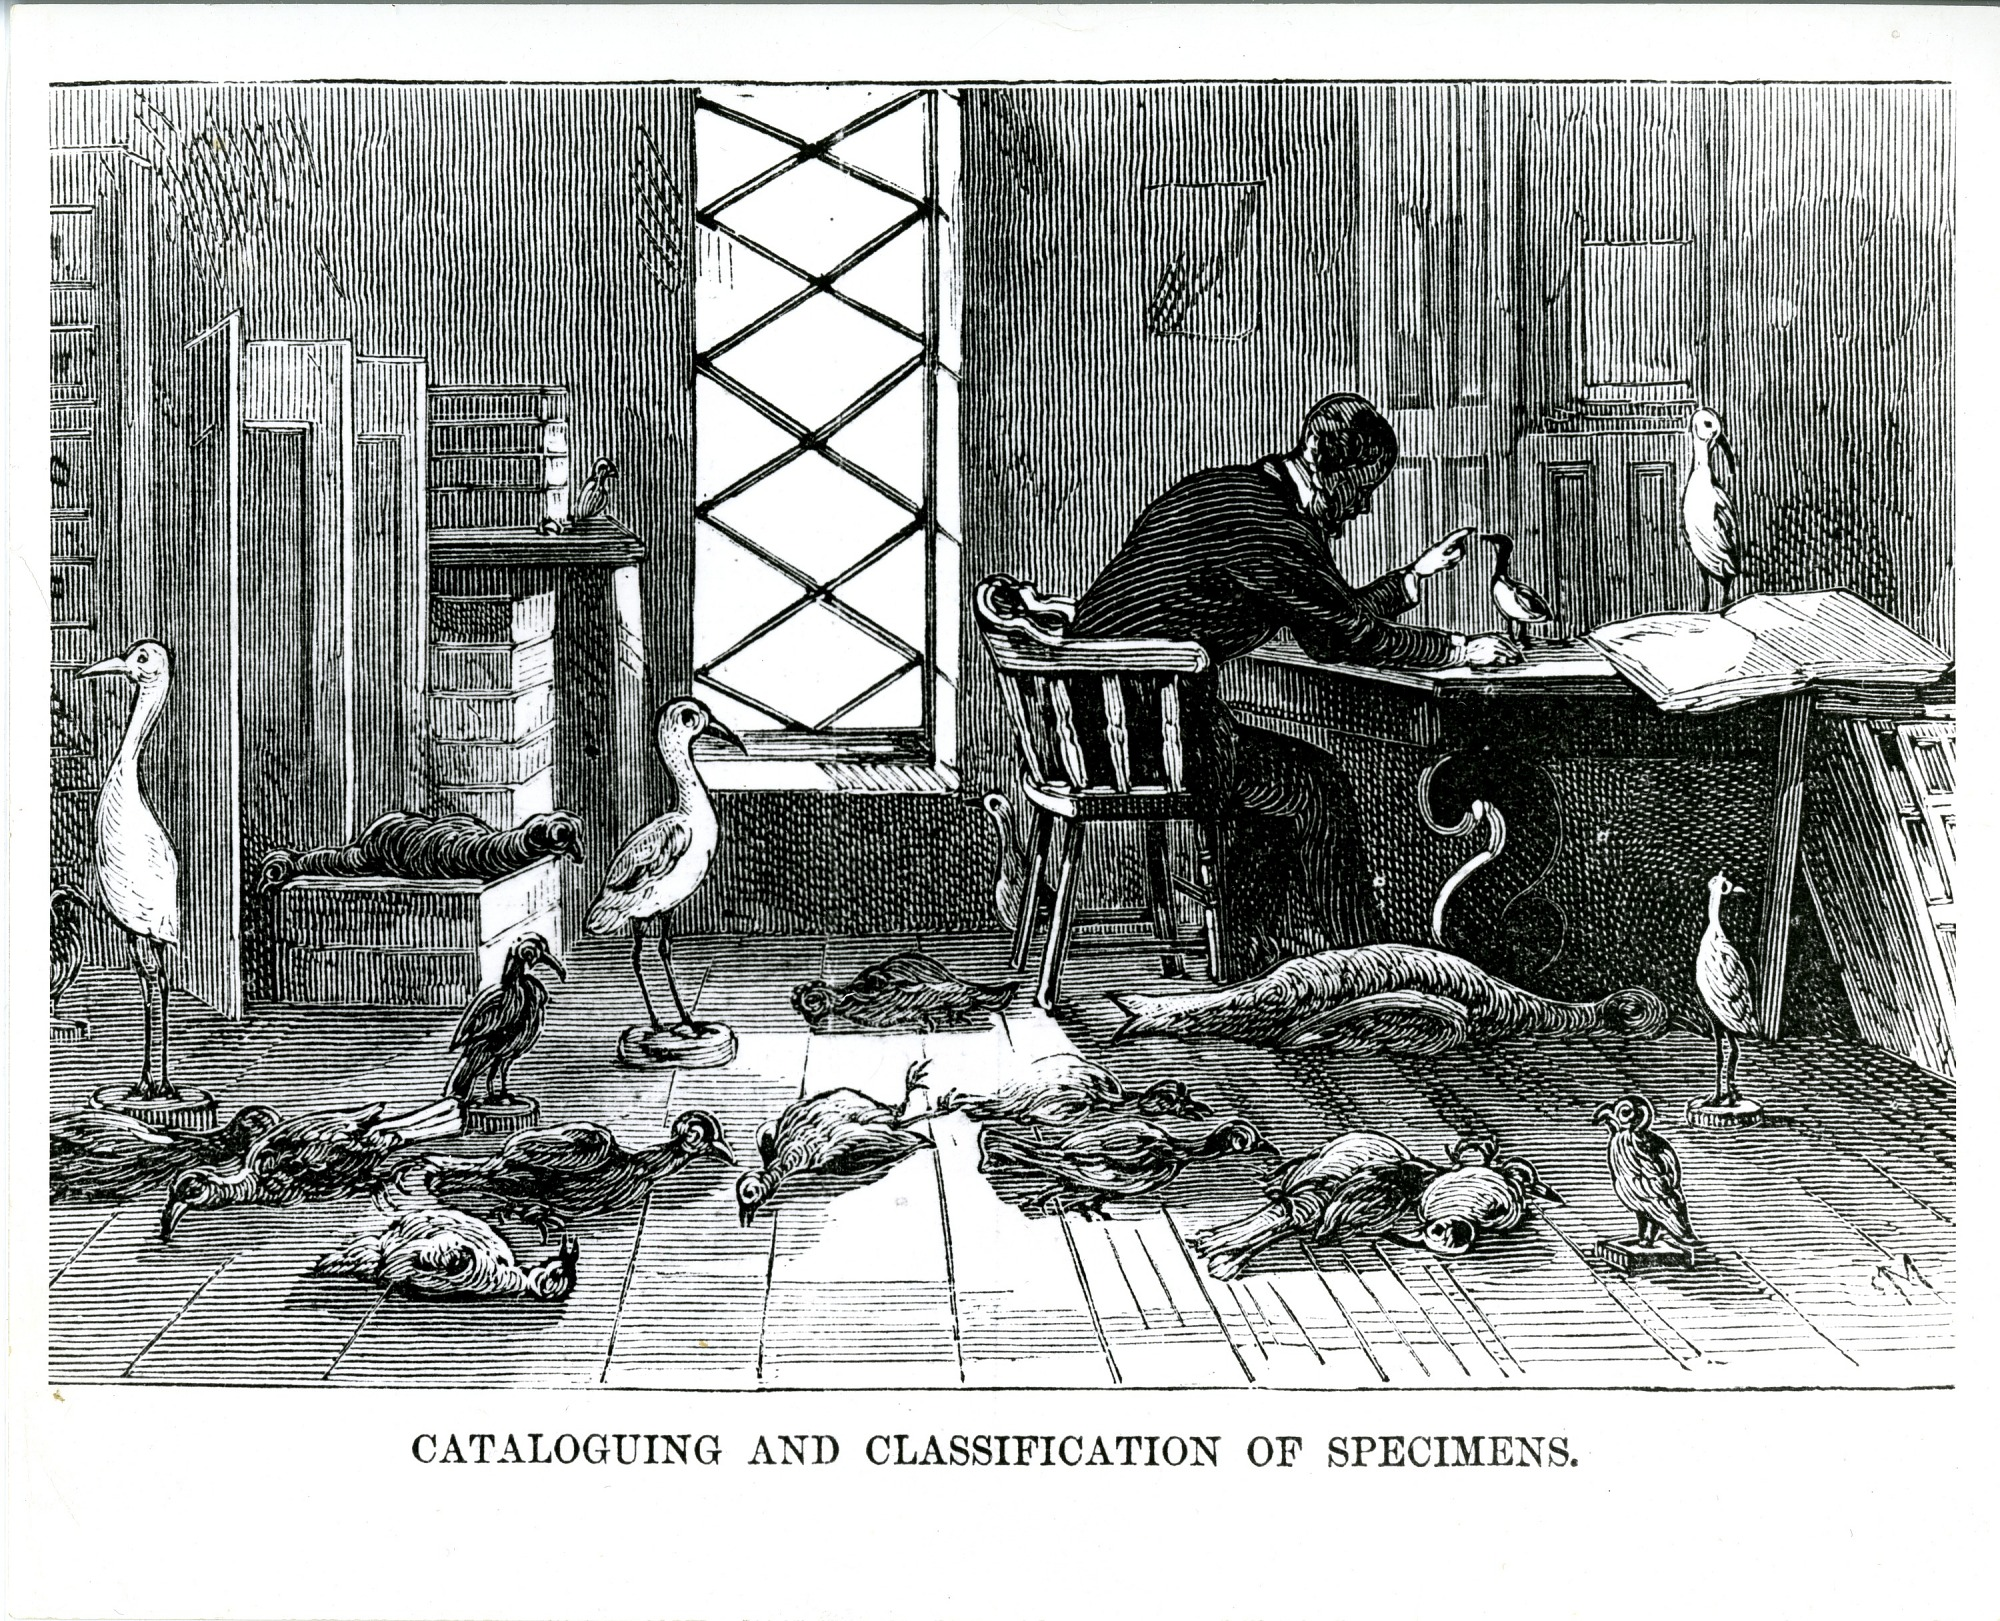 images for Ornithologist Cataloging Specimens, Natural History Laboratory, in the Smithsonian Institution Building